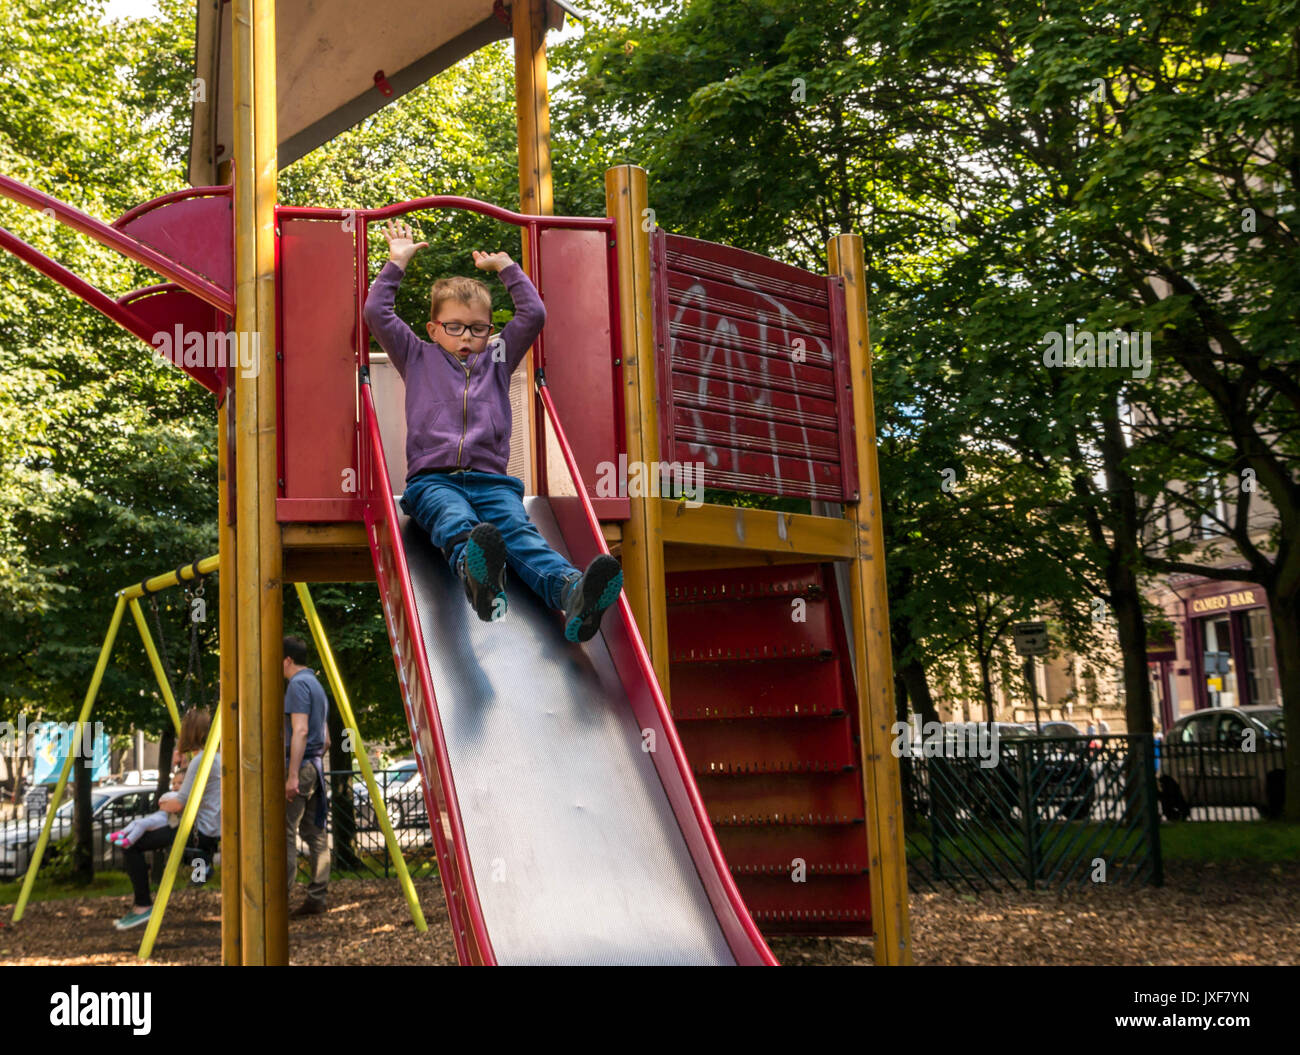 Young disabled boy with glasses and carbon fibre leg brace being brave going down slide in adventure playground, Leith, Edinburgh, Scotland, UK - Stock Image